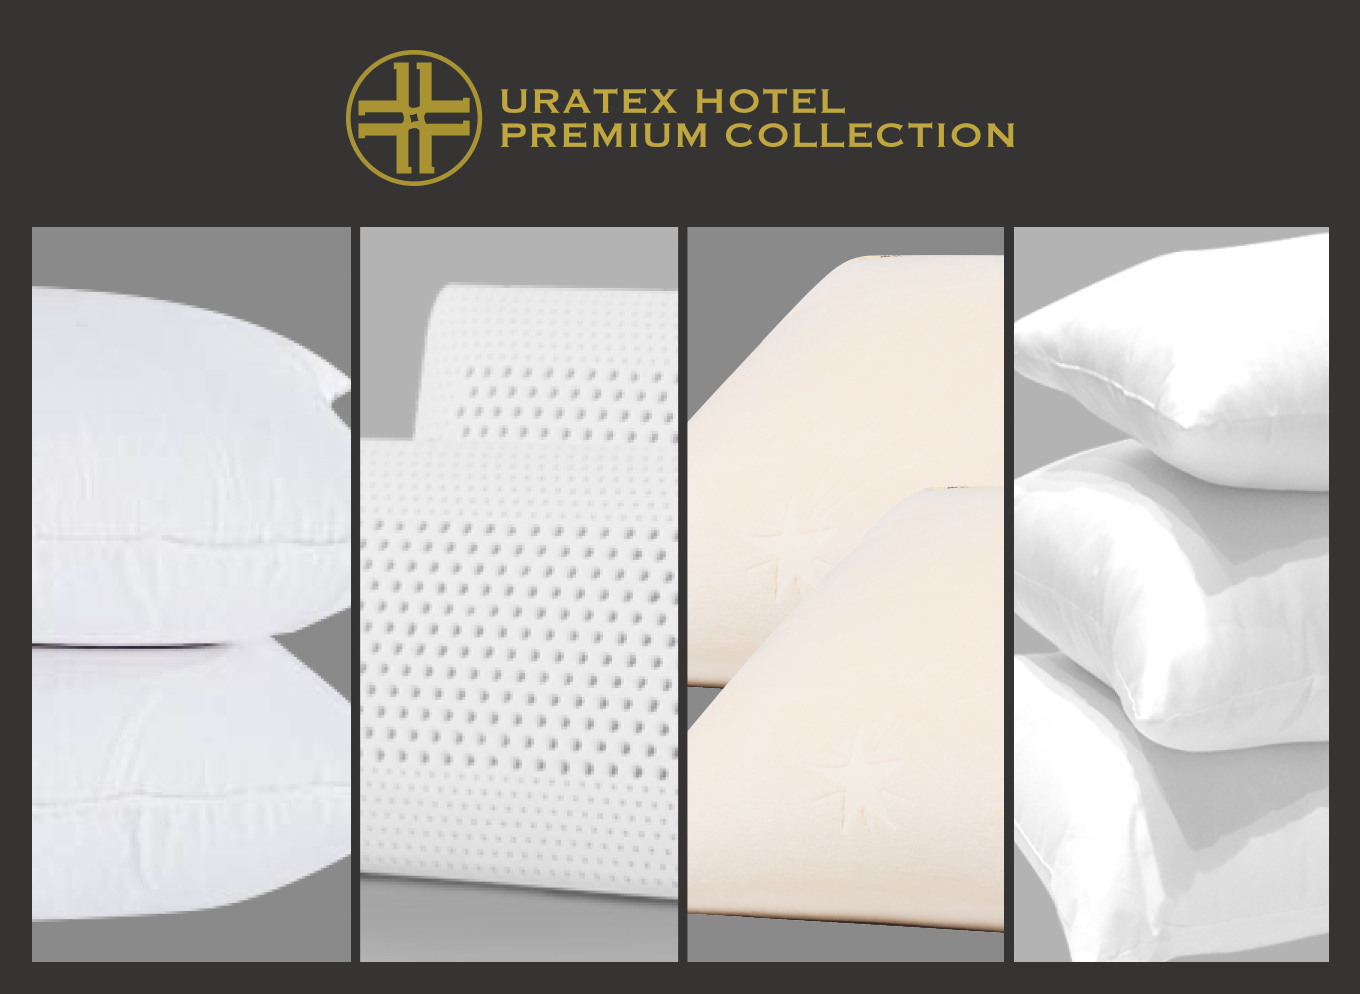 6 Pillows That Will Enhance the Five-Star Sleep Experience